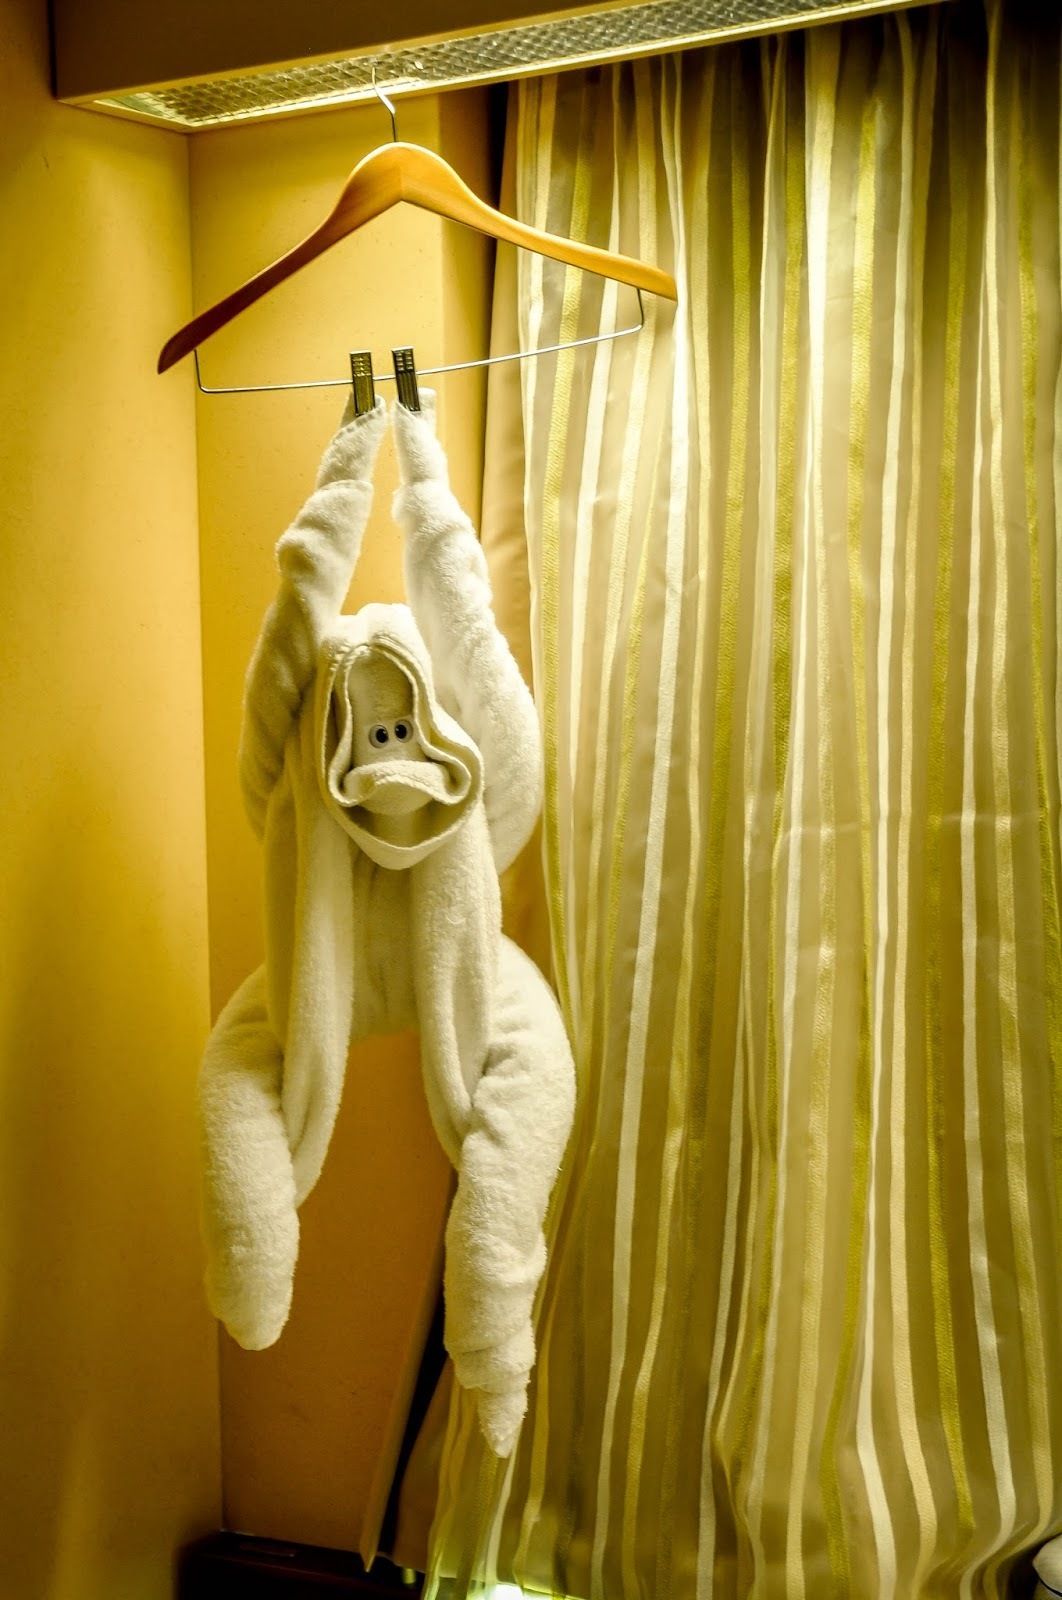 Towel monkey hanging from hanger by clothespins